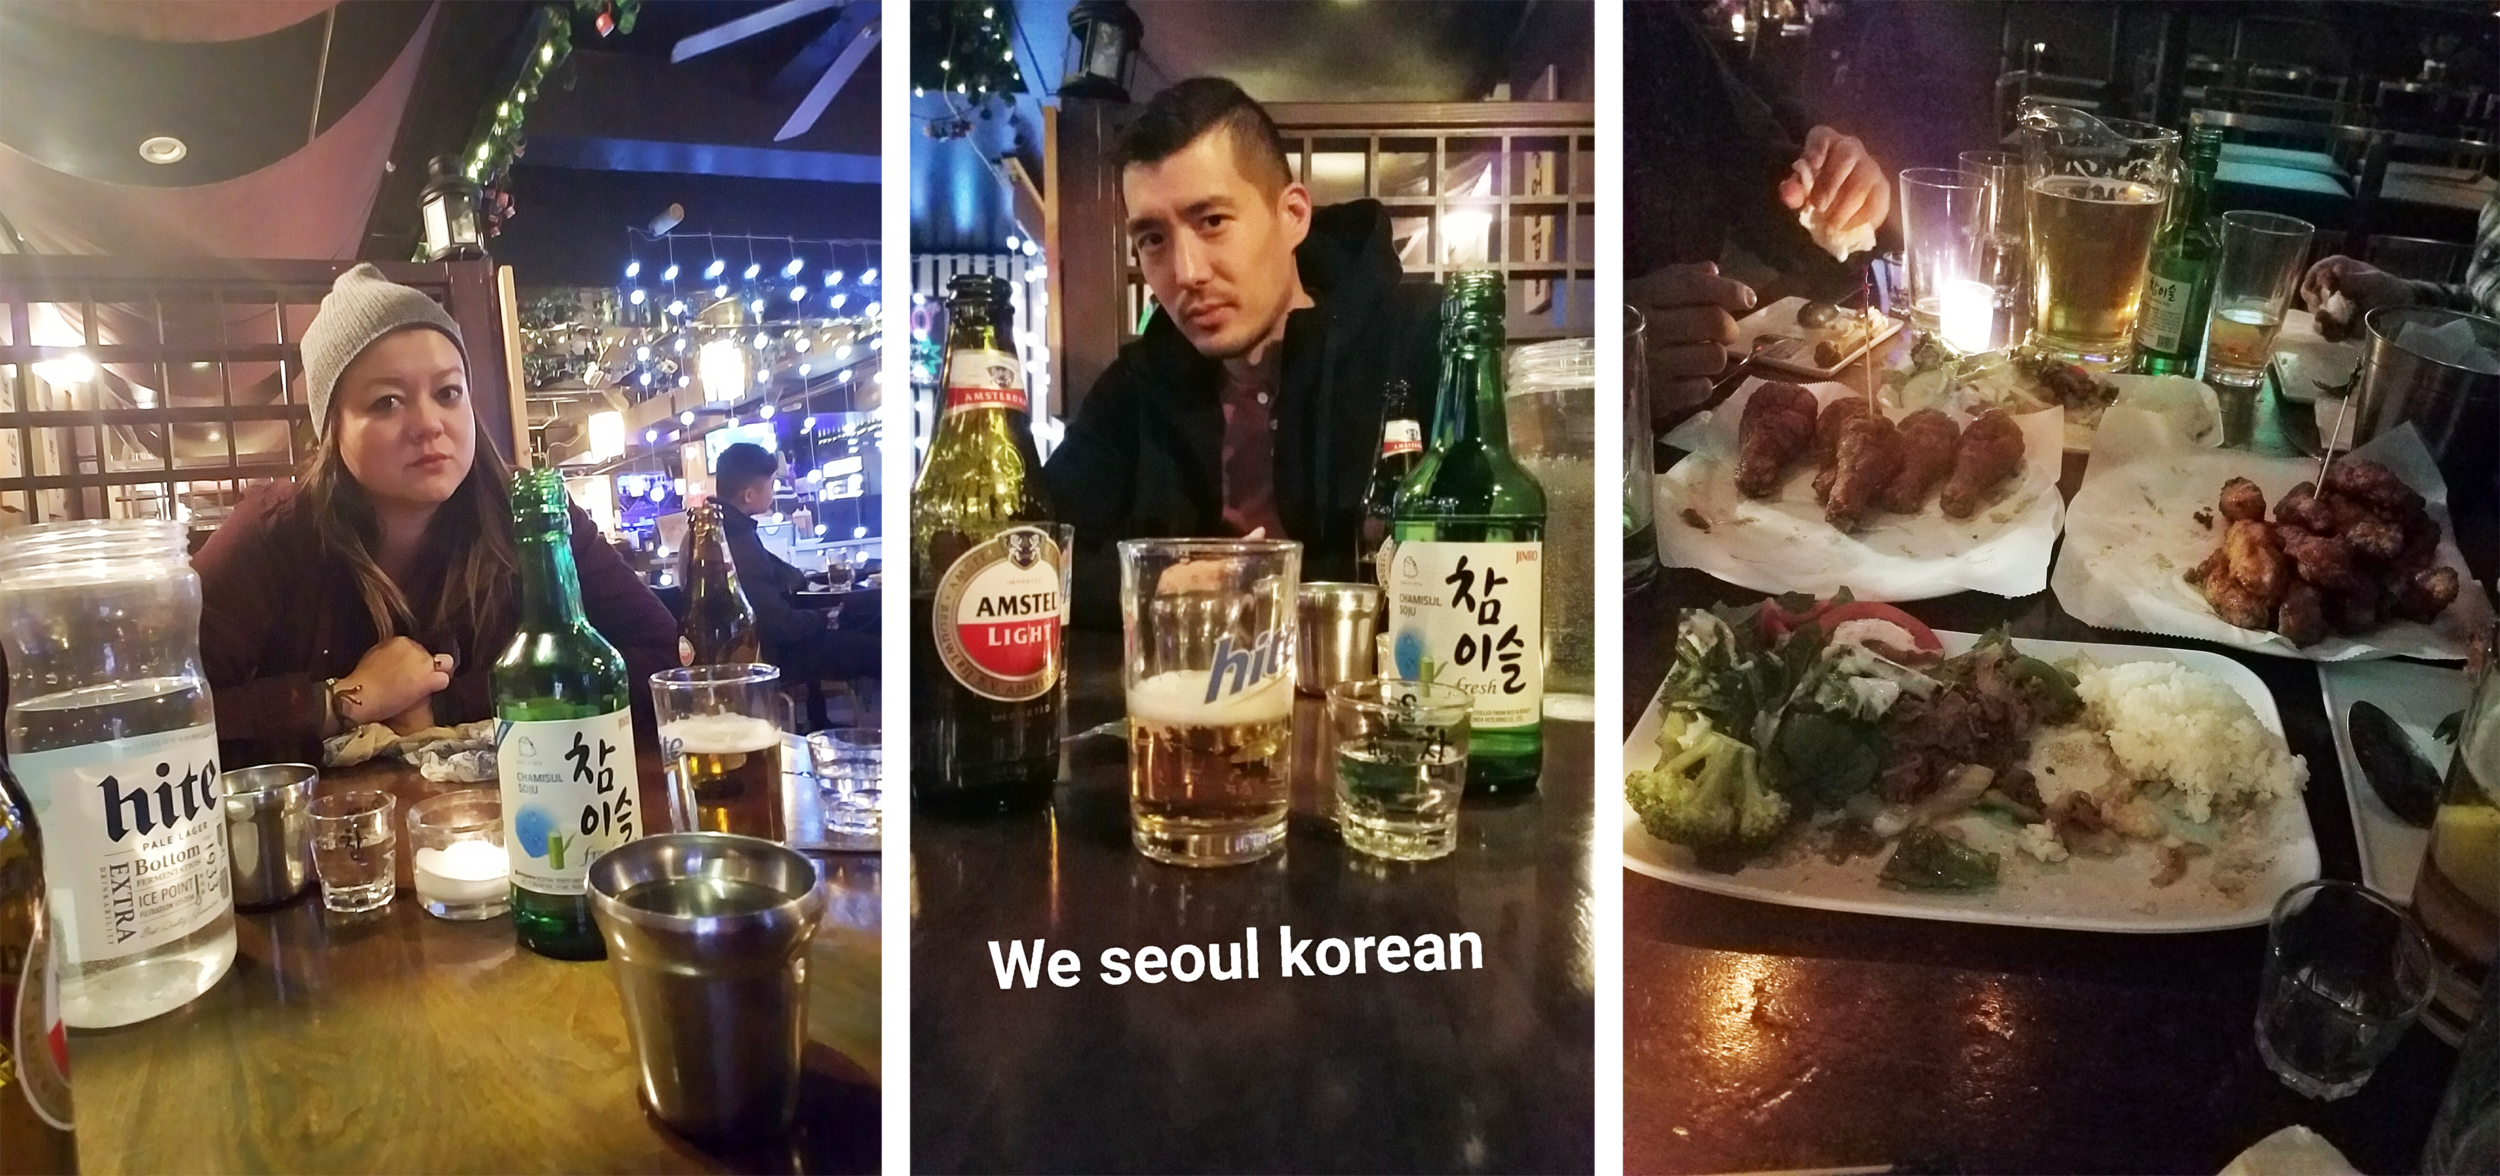 Hanging in Koreatown, since we obviously are seoul Korean. Also, blue steele. Duh.